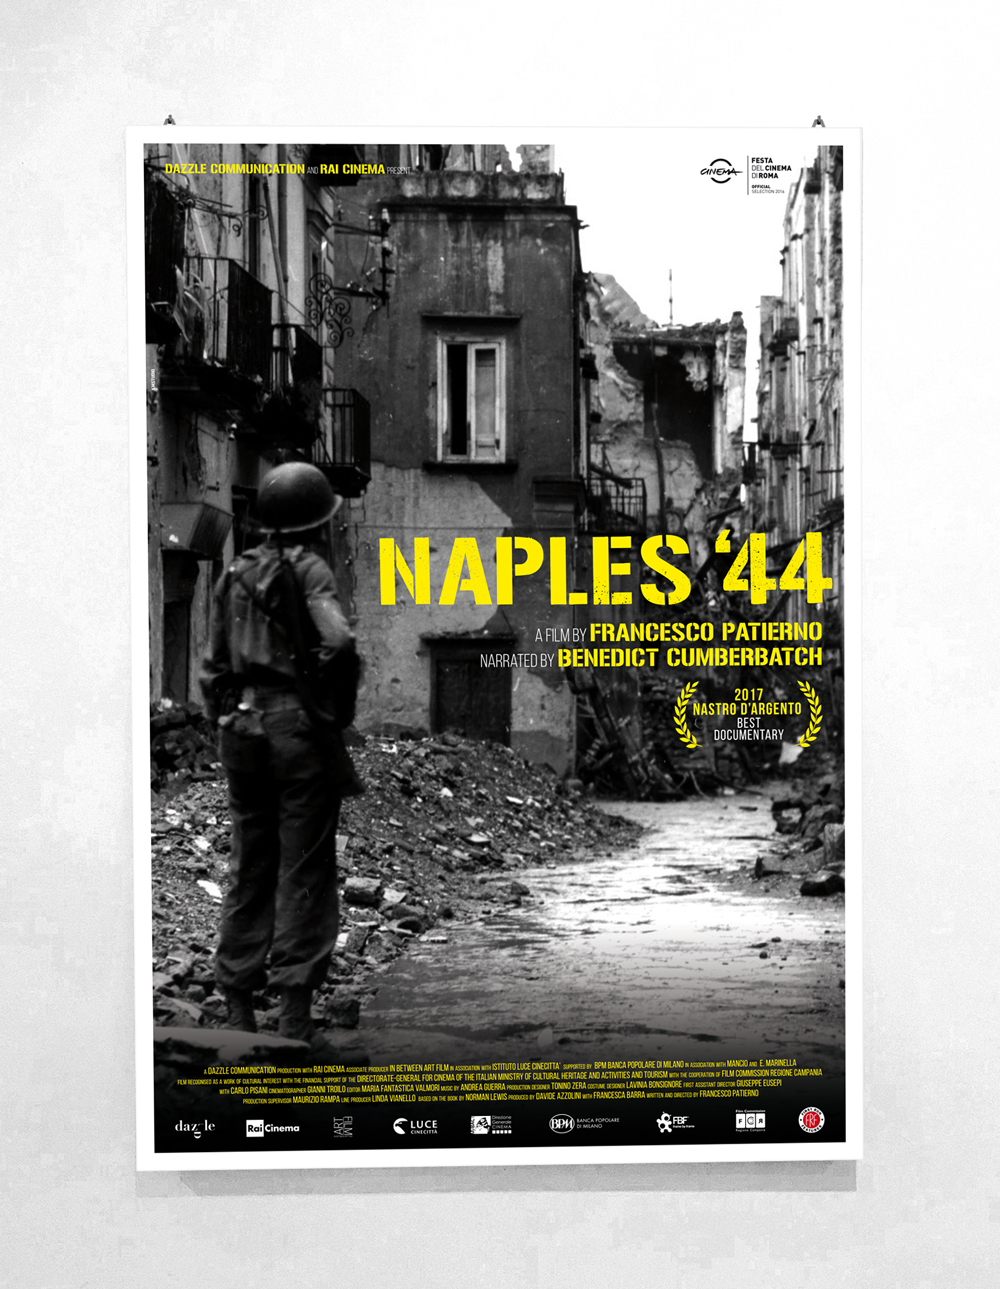 Naples '44 Naples '44 - Directed by Francesco Patierno - Official North America Poster